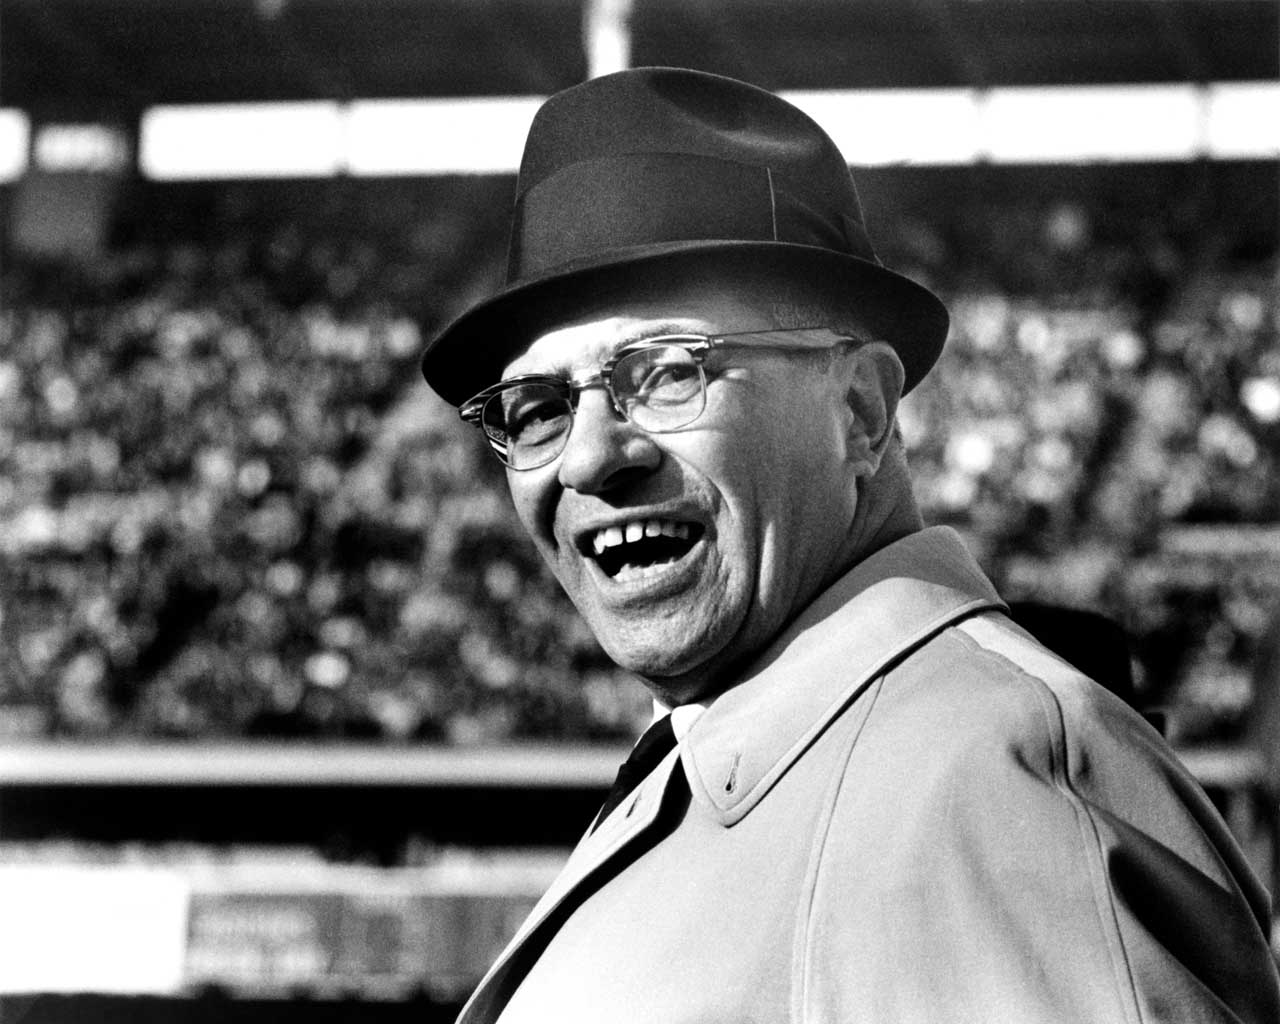 a biography of vince lombardi A reverential biography of the patron saint of green bay football, vince lombardi october 24, 1999 in his remarkable biography of lombardi.